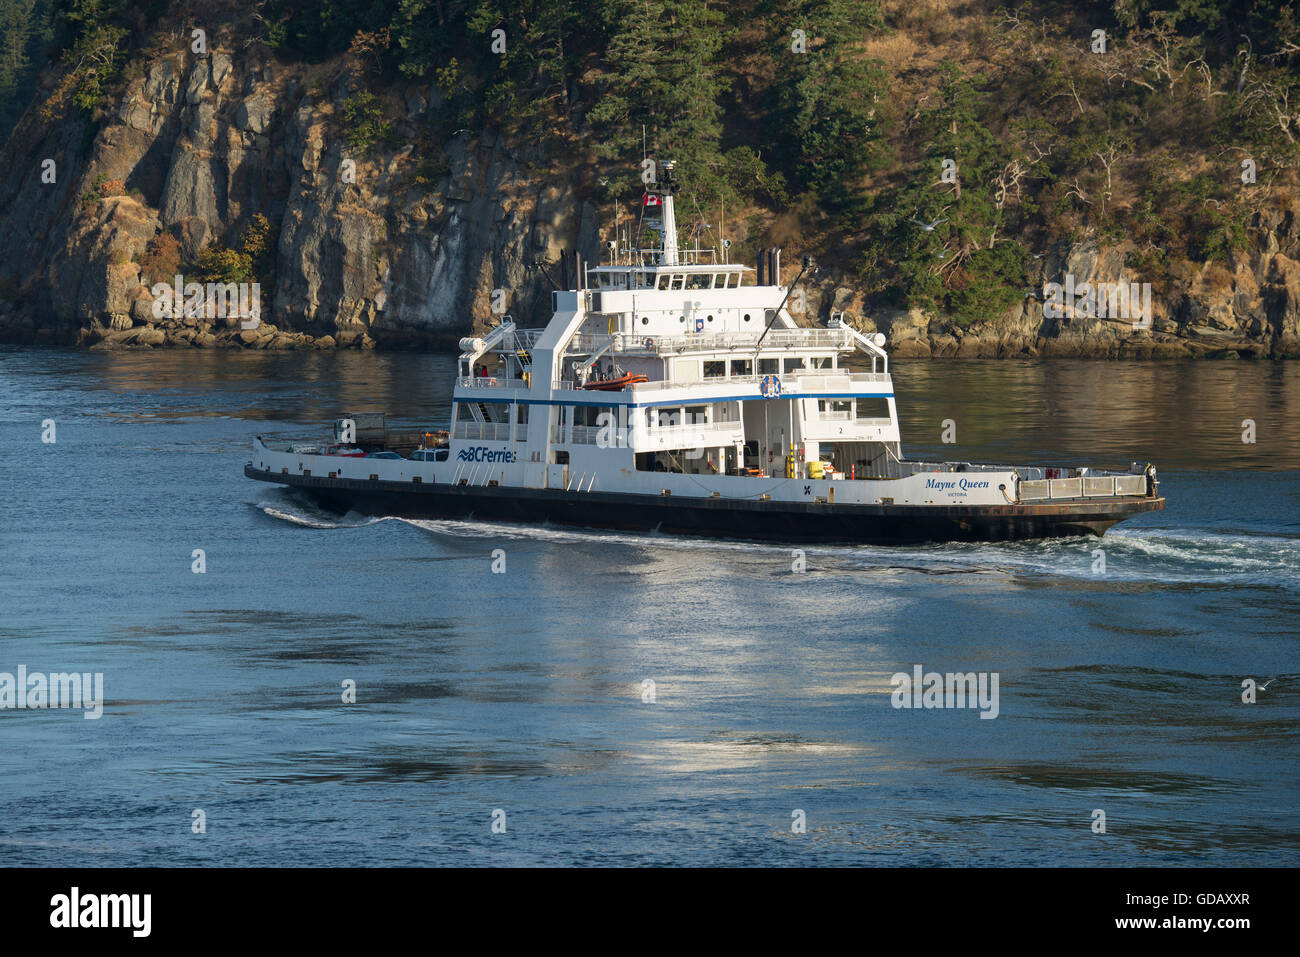 Car Ferry - Stock Image